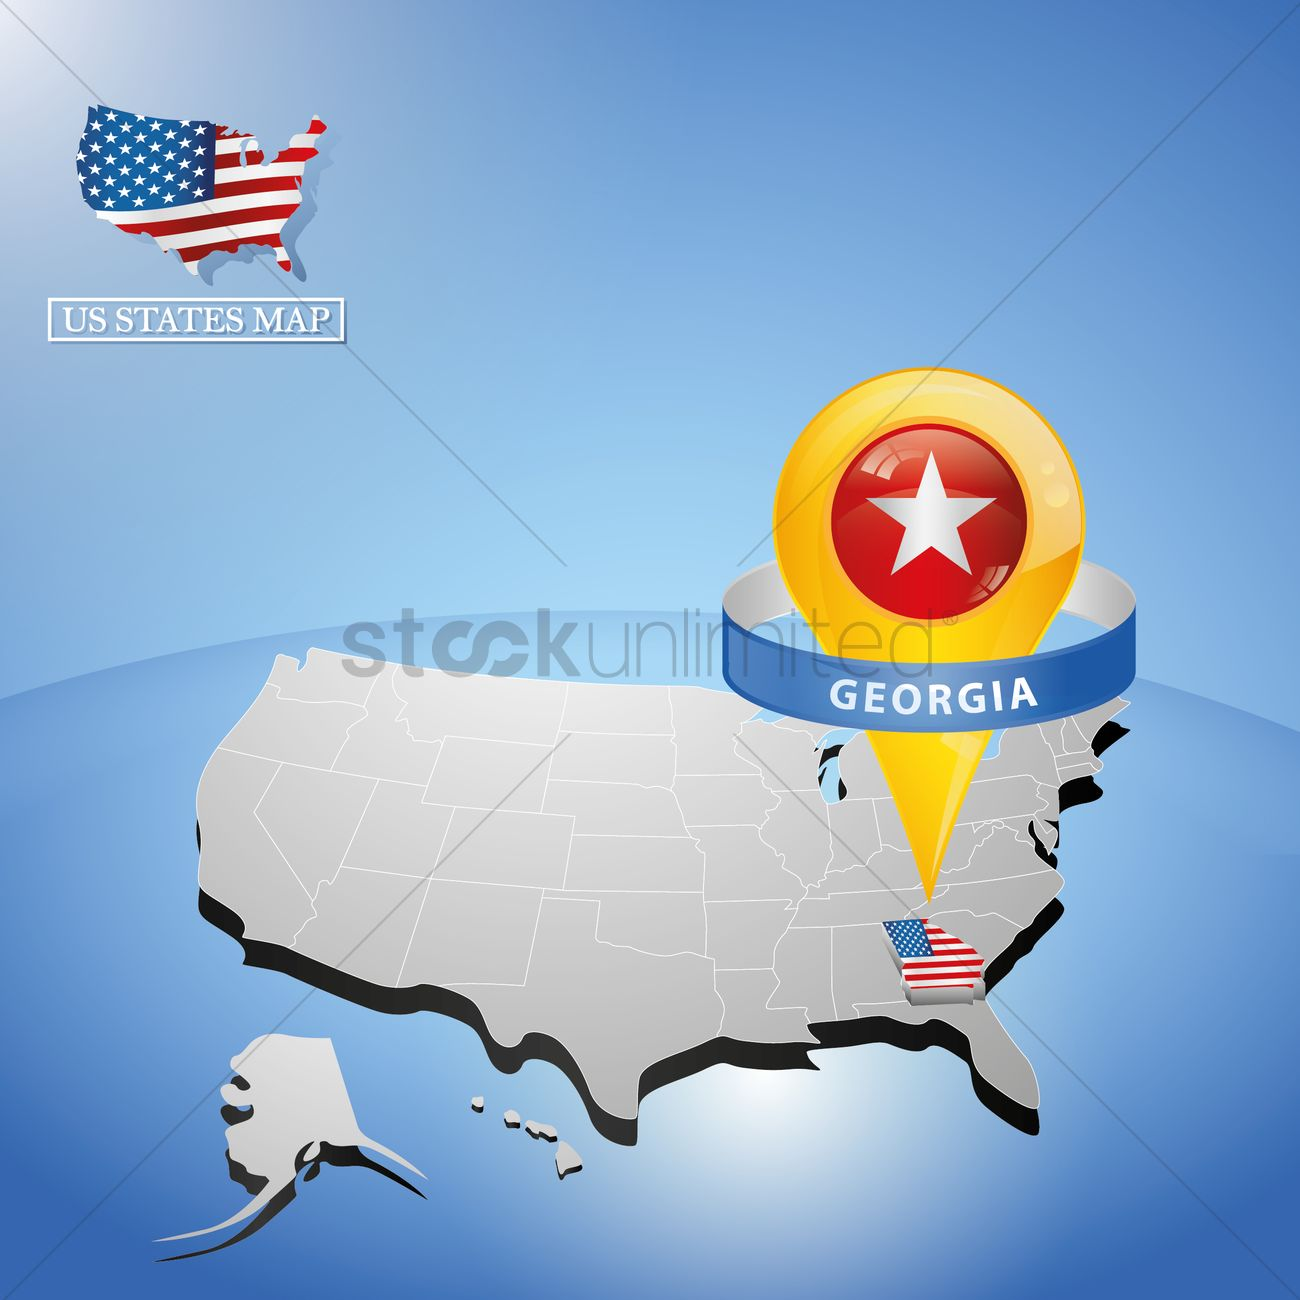 Georgia state on map of usa Vector Image - 1534117 ... on georgia on map of asia, georgia on us map, georgia on europe map,